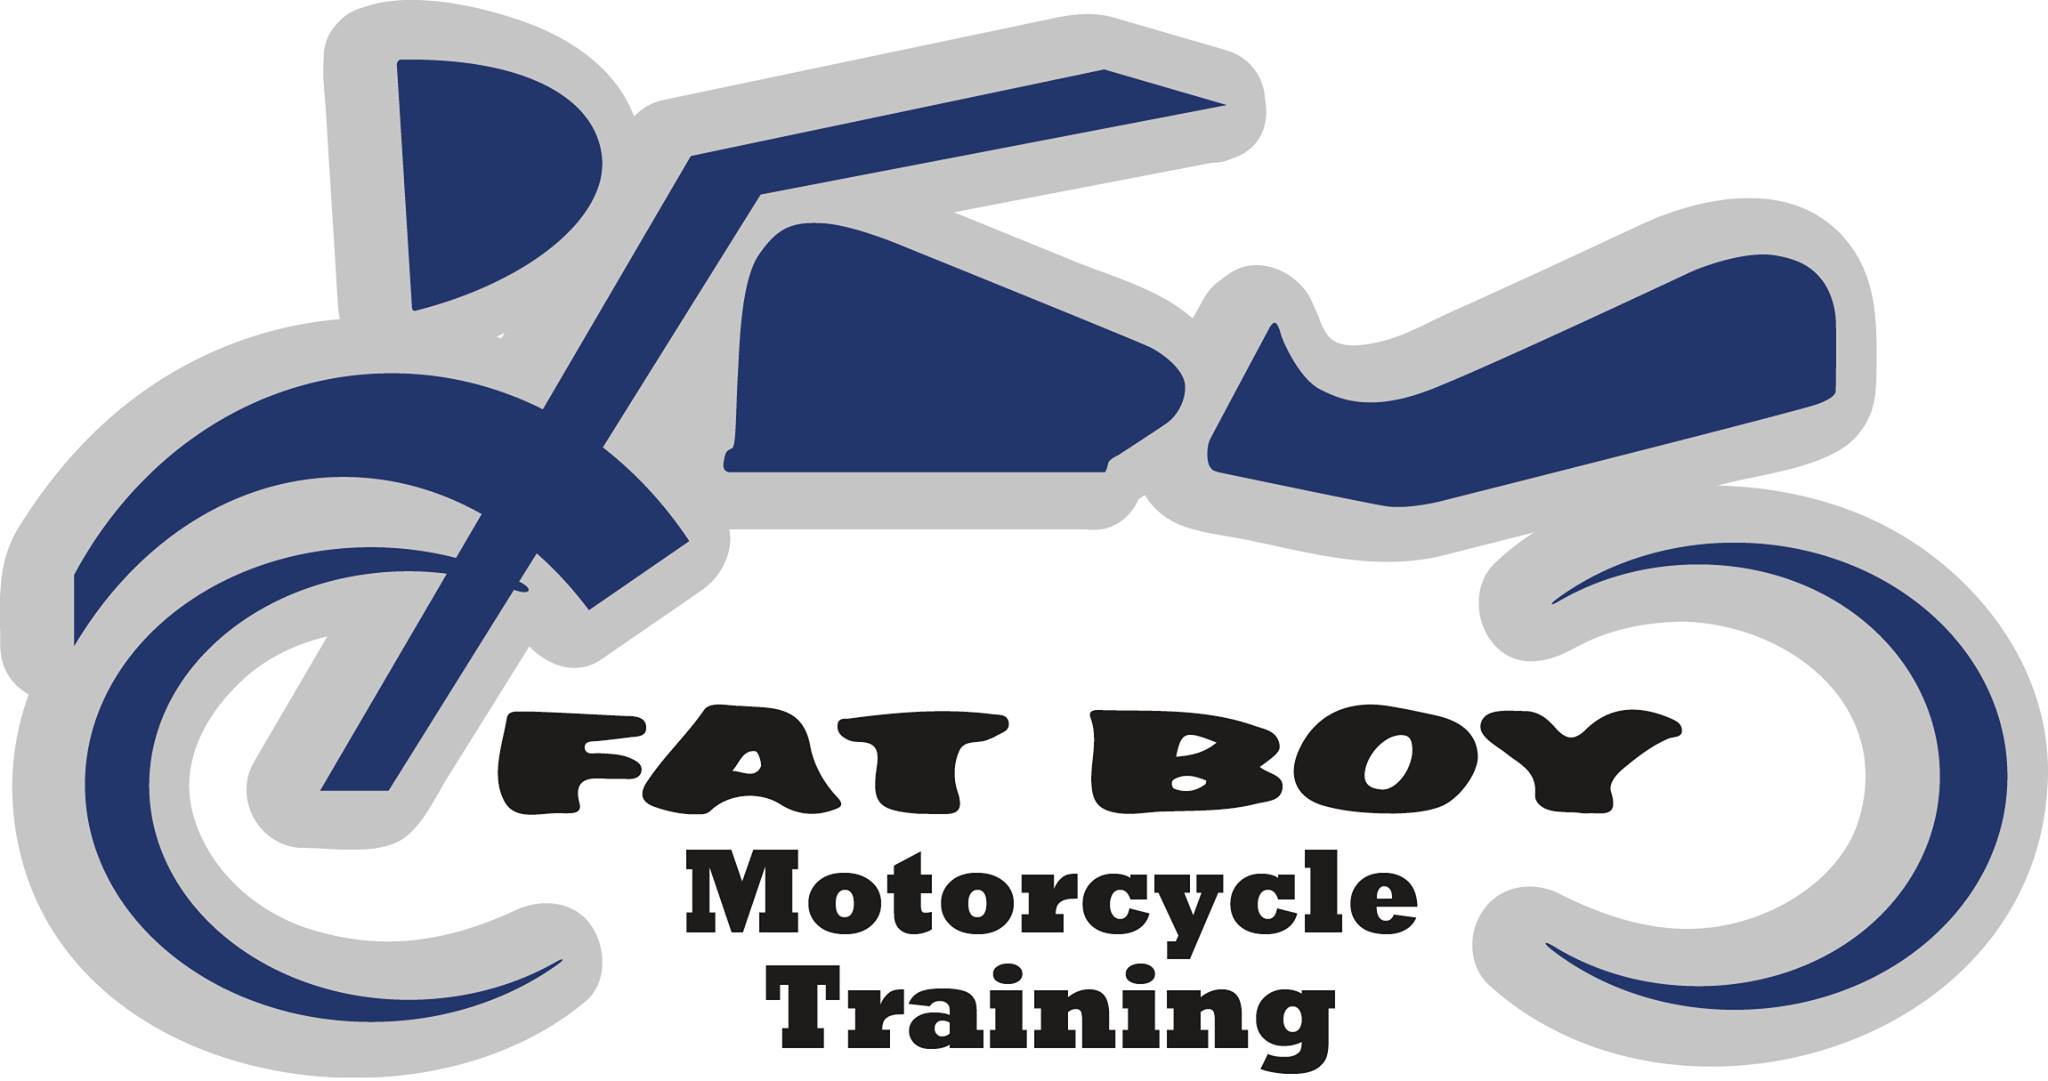 Fatboy Motorcycle Training in Southampton